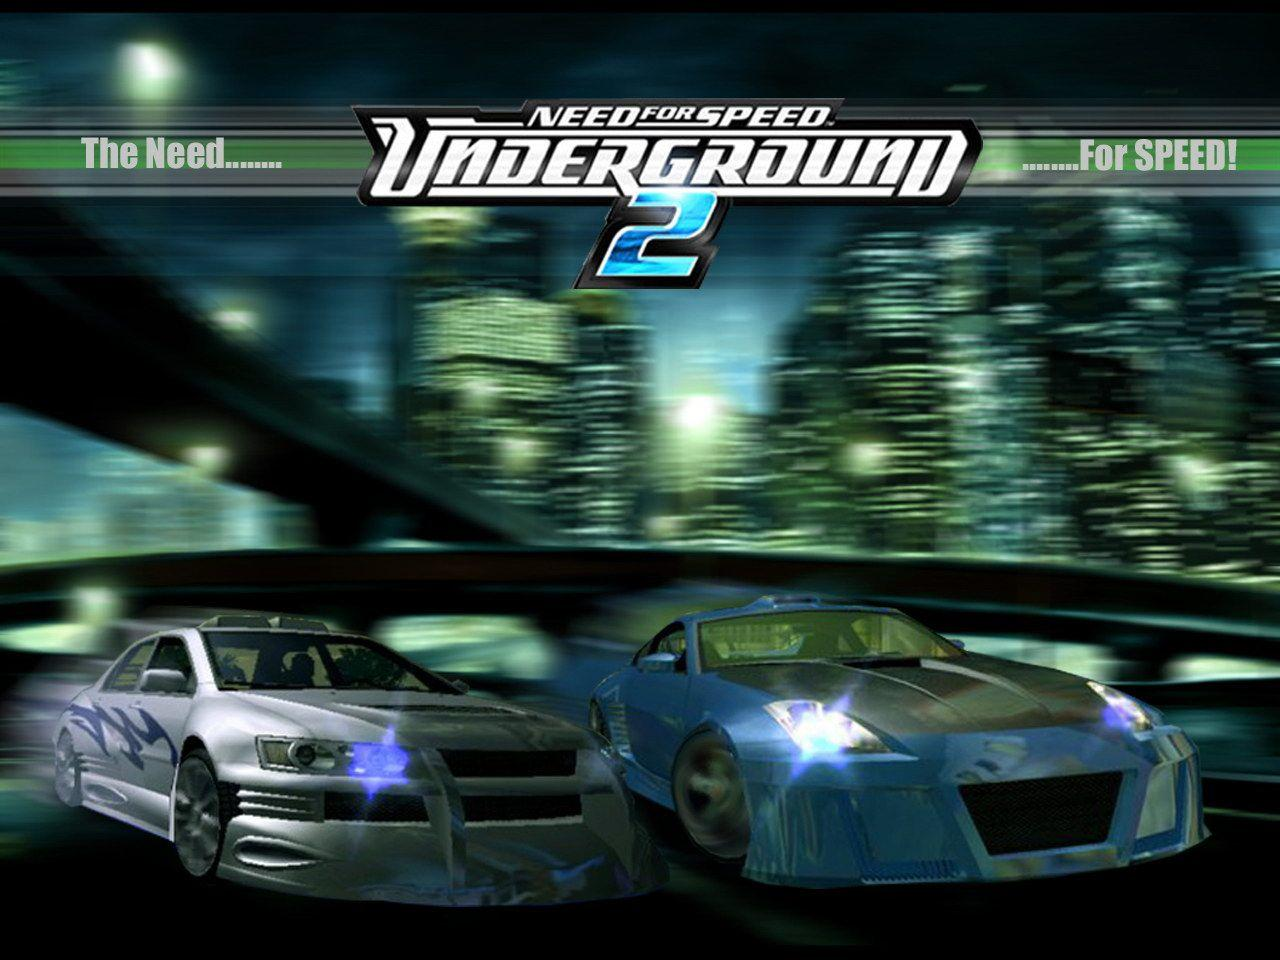 Need For Speed Underground 2 Wallpapers - Wallpaper Cave